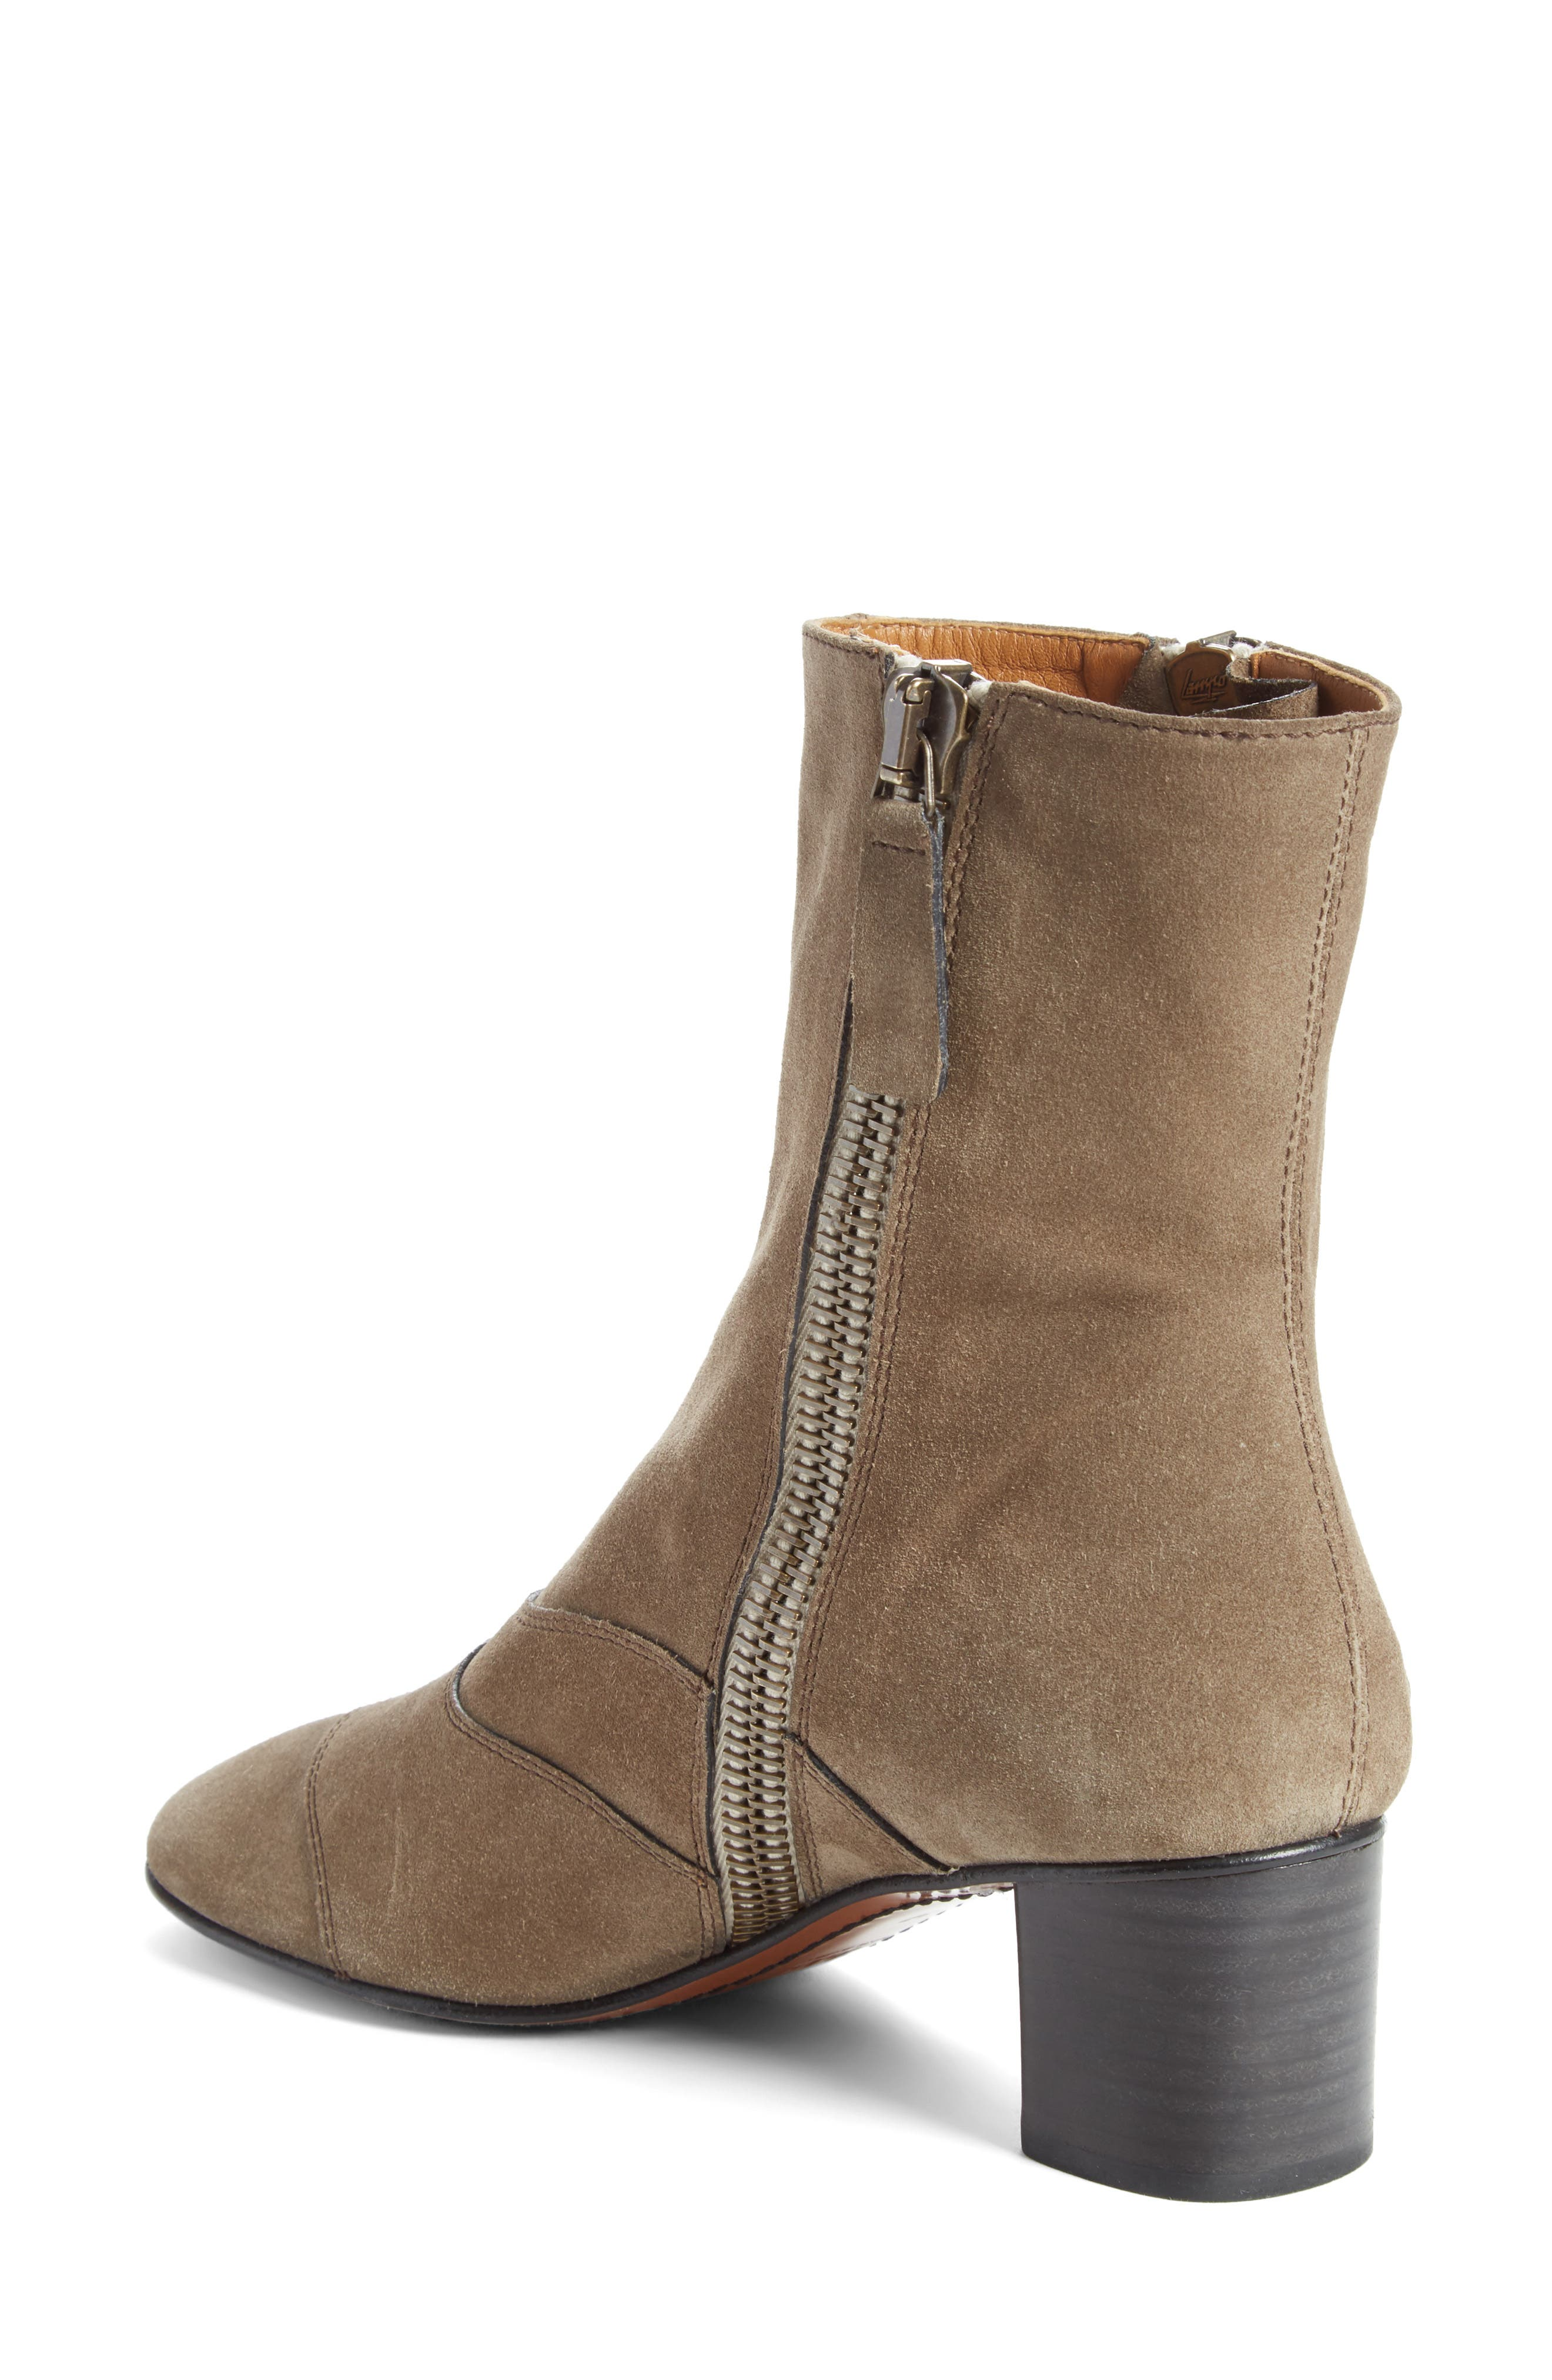 Lexie Block Heel Boot,                             Alternate thumbnail 2, color,                             021